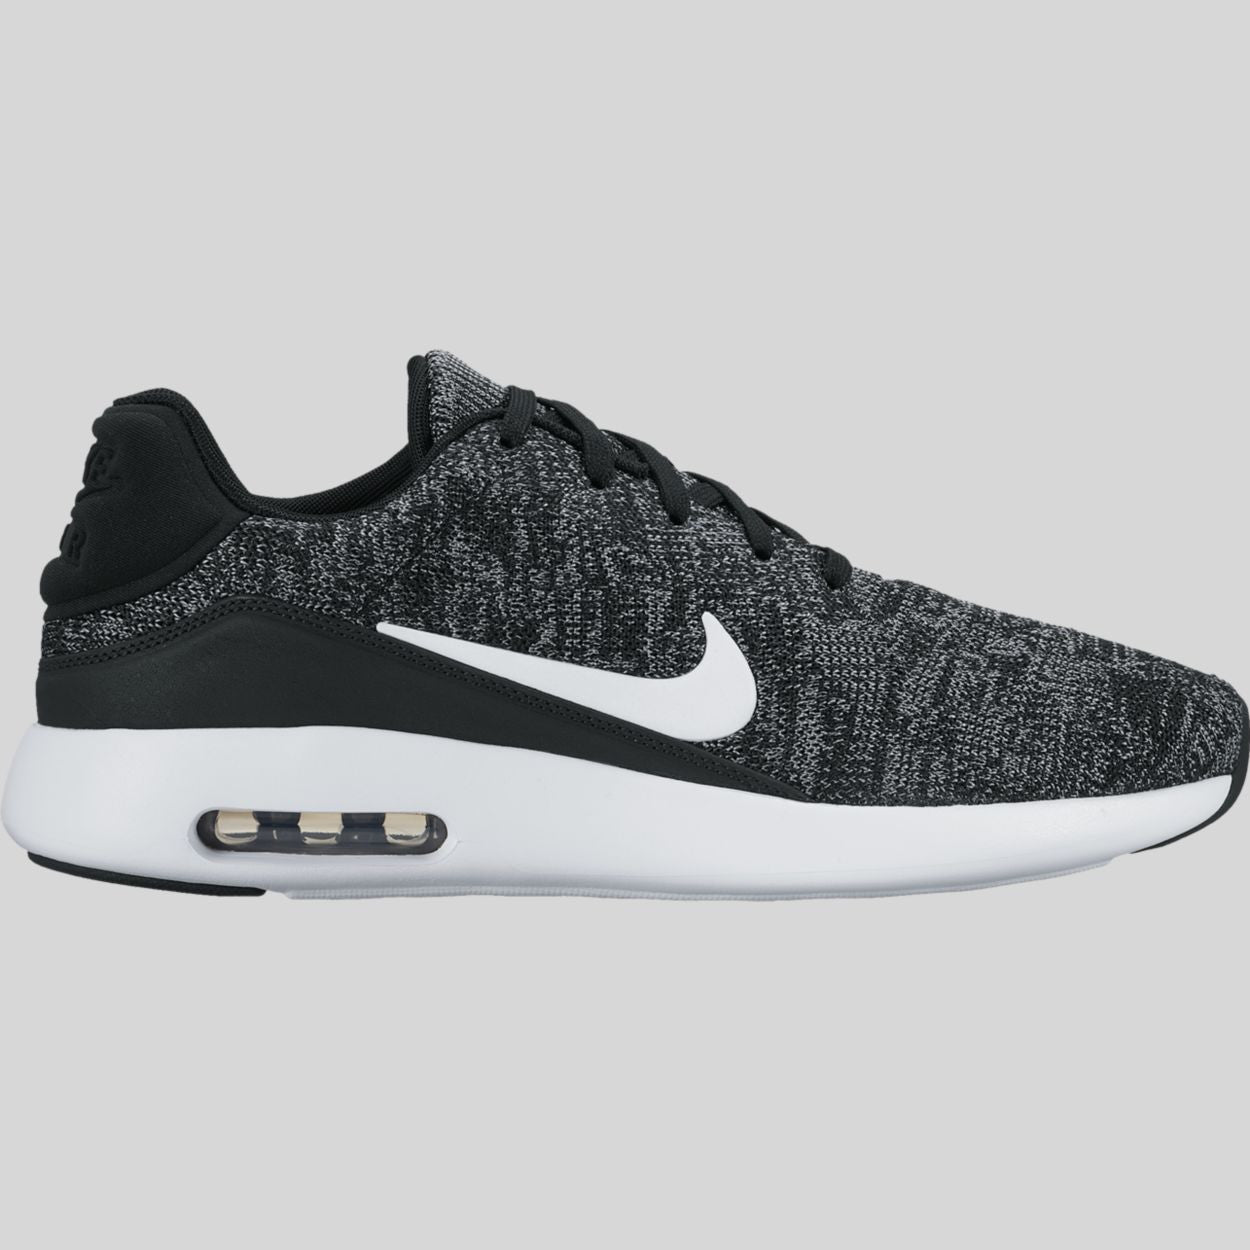 Nike Air Max Modern Flyknit Black White Cool Grey University Red